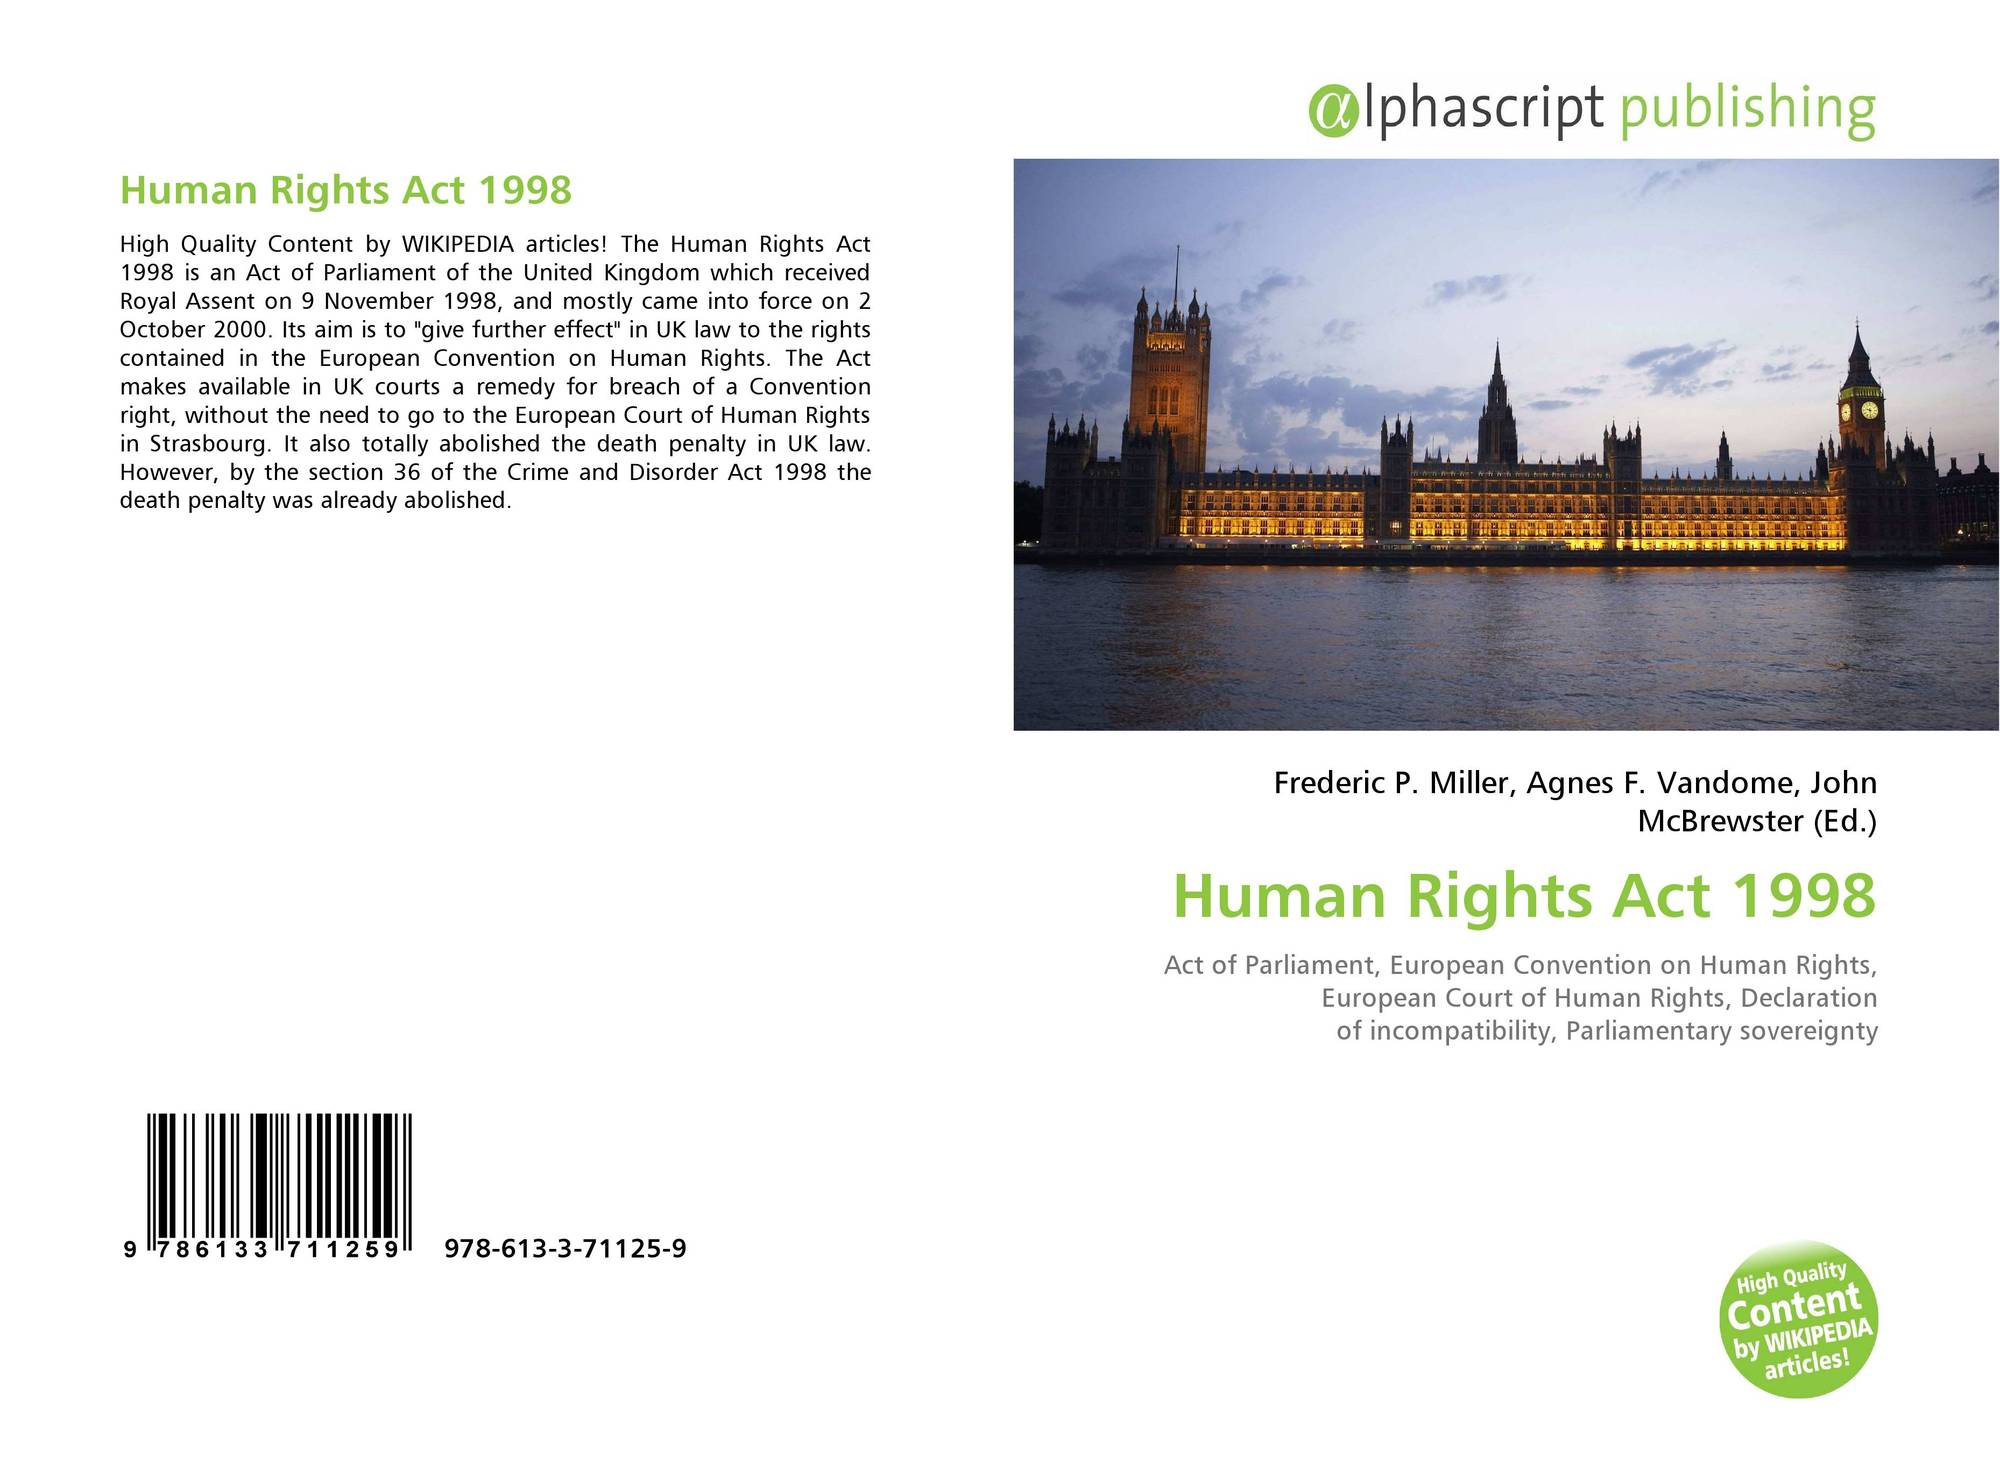 'although the human rights act 1998 Although international human rights law provides an important framework for guaranteeing the rights of all people in all countries, human rights standards generally do not become enforceable in the united states unless and until they are implemented through local, state, and/or federal law.